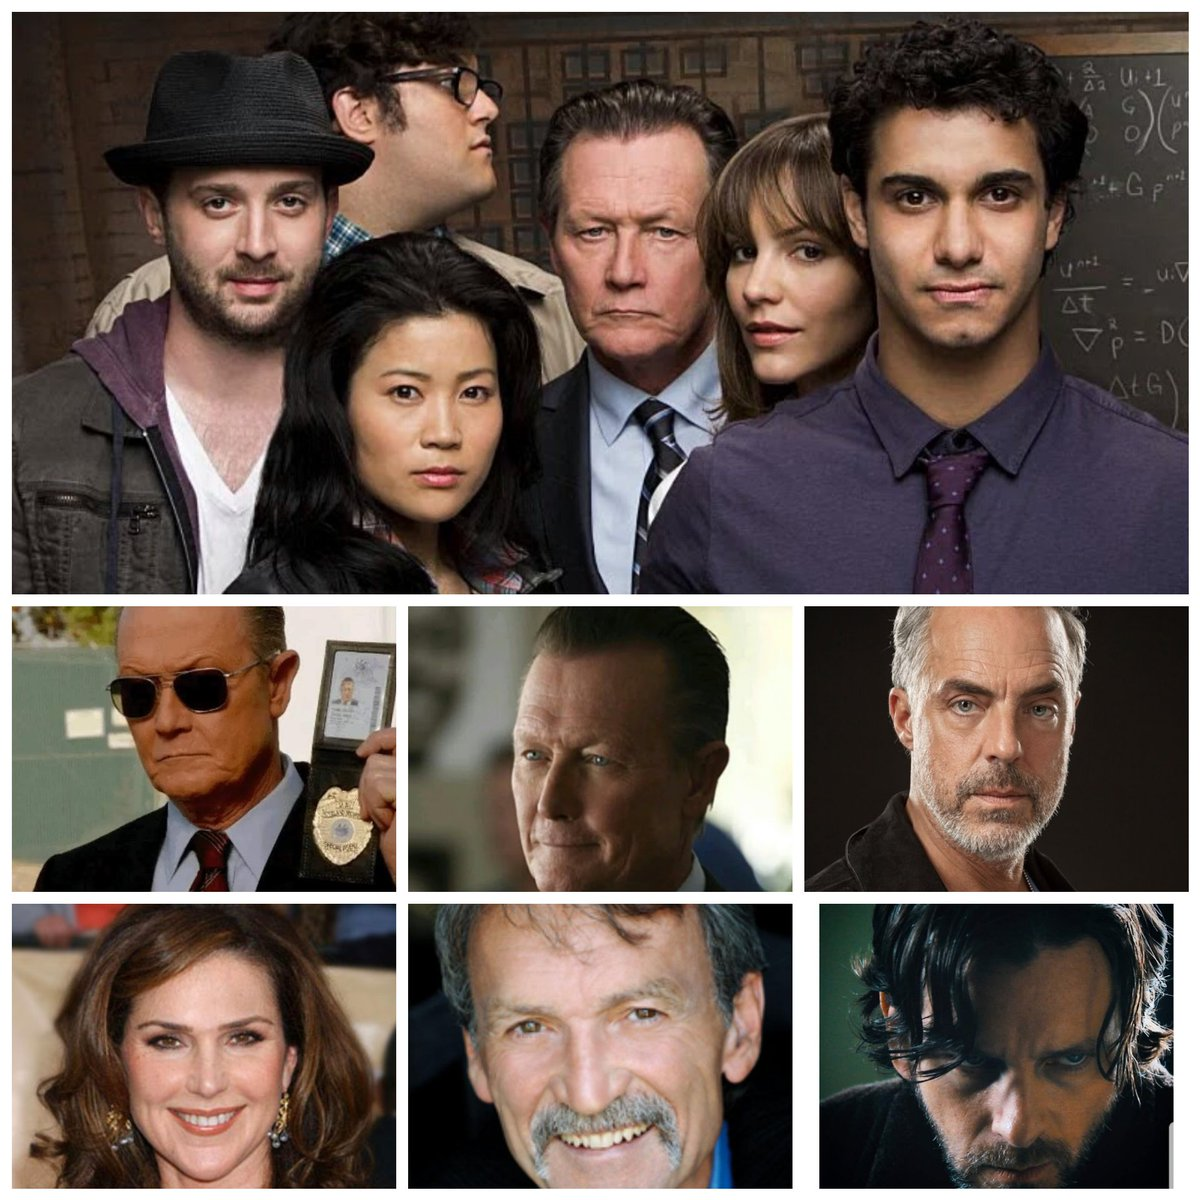 I&#39;ve published on  http:// katesimon.net  &nbsp;   &quot;Scorpion 2.0: The Return&quot; Story 37 is my take on reuniting the team. The story also features @GilpinPeri as Cooper @welliver_titus as Jake Martin @MuseWatson as Chester Thornton &amp; @johnjtague as Tague #SaveScorpion @ScorpionCBS #Scorpion<br>http://pic.twitter.com/2Bc4S9KrA3